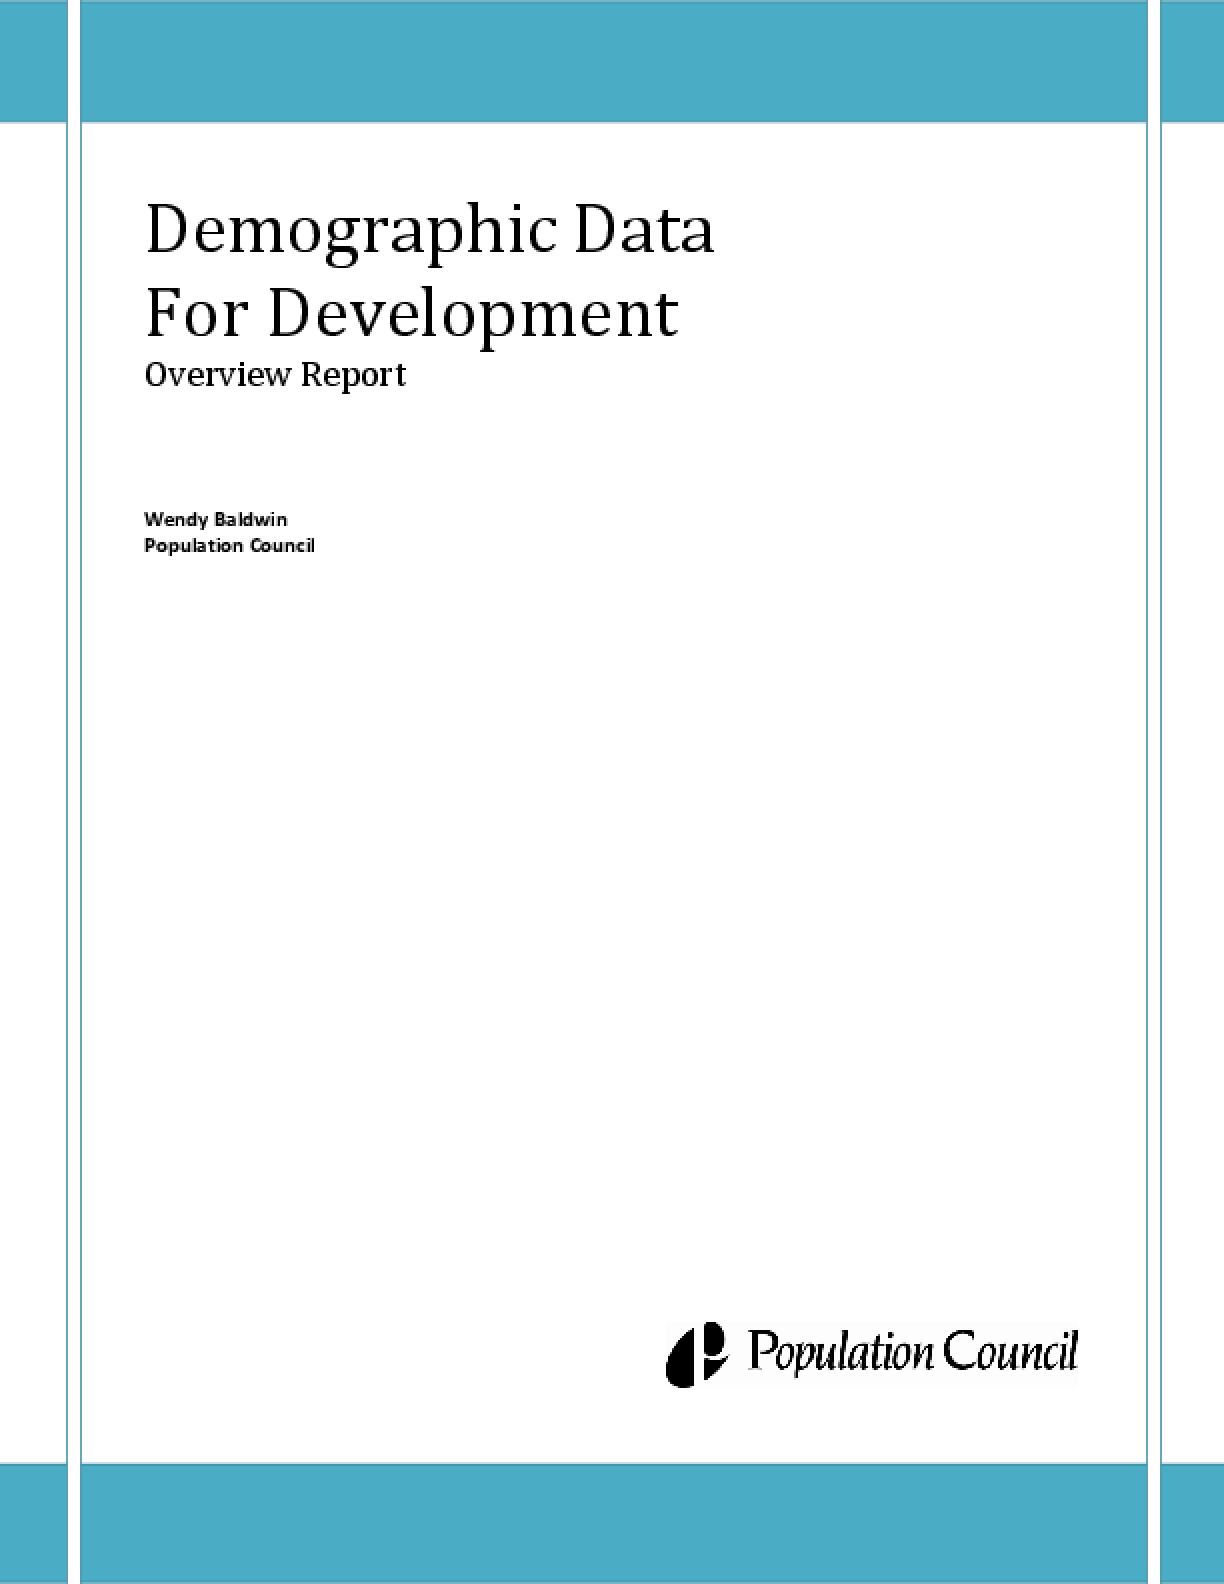 Demographic Data for Development: Overview Report